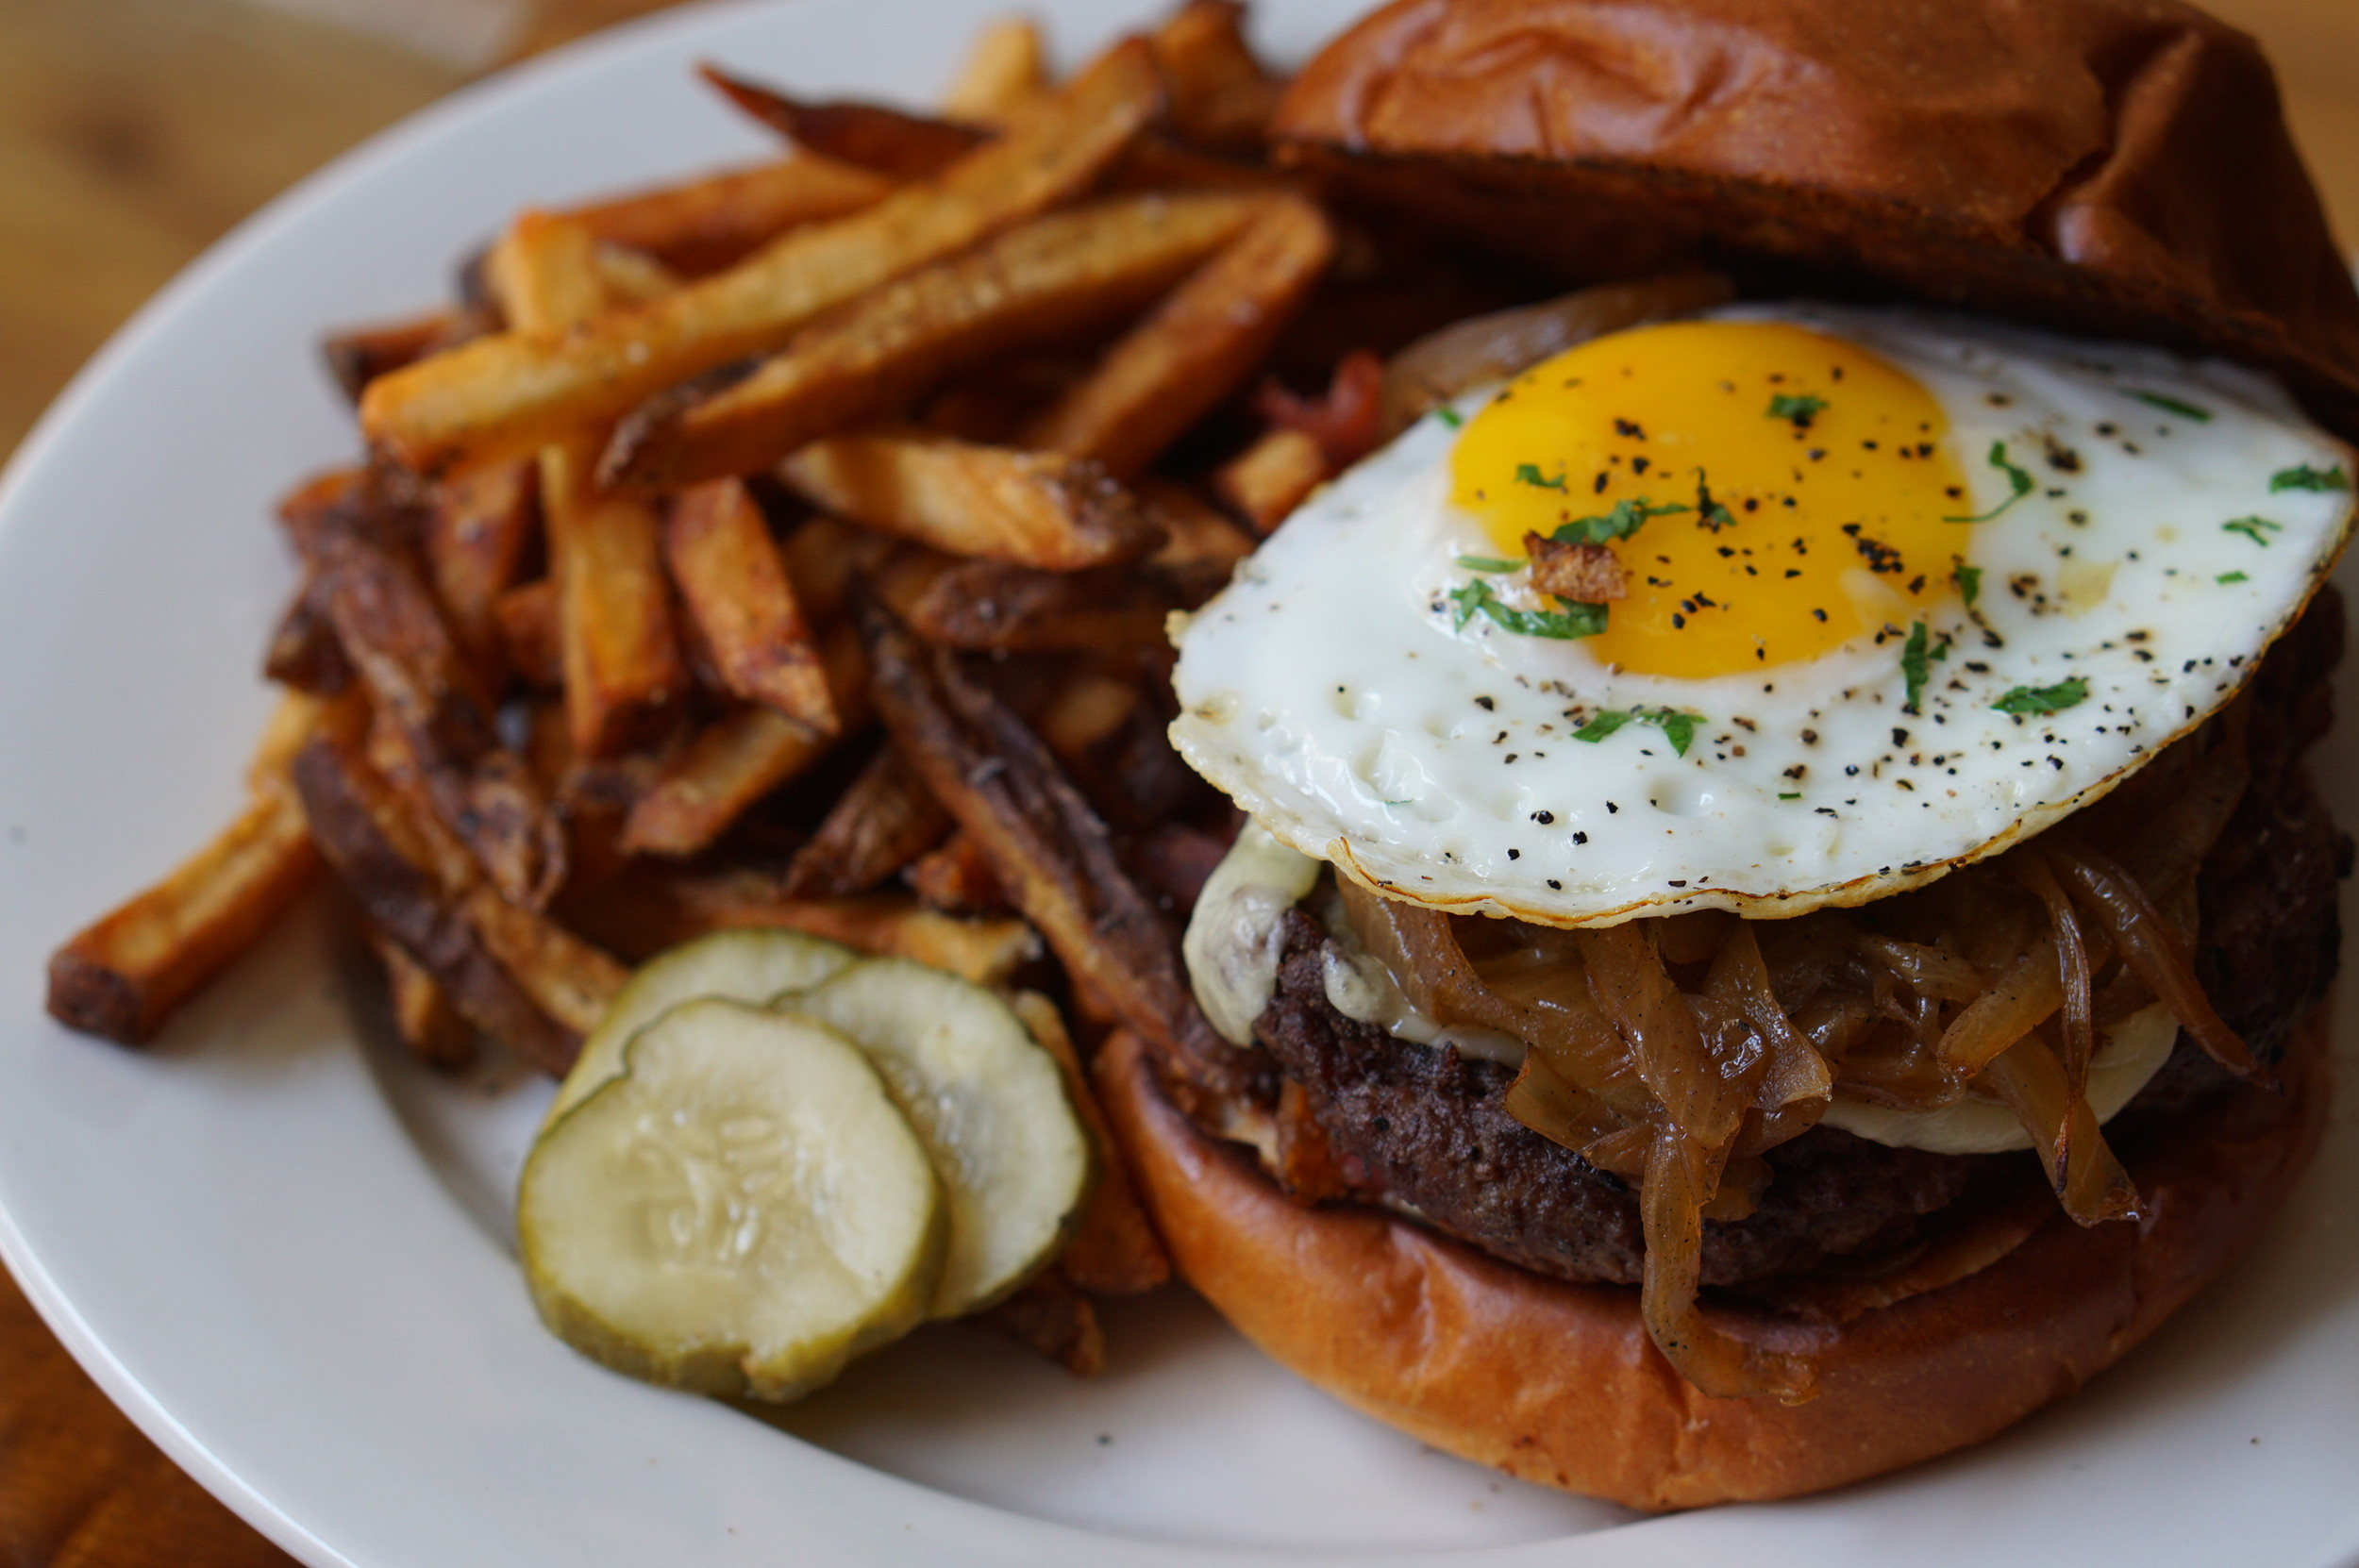 BRU, Sunday Burger, Midtown Village, Openinphilly, restaurant, philadelphia, pope francis, openinphilly, popeinphilly, aversapr